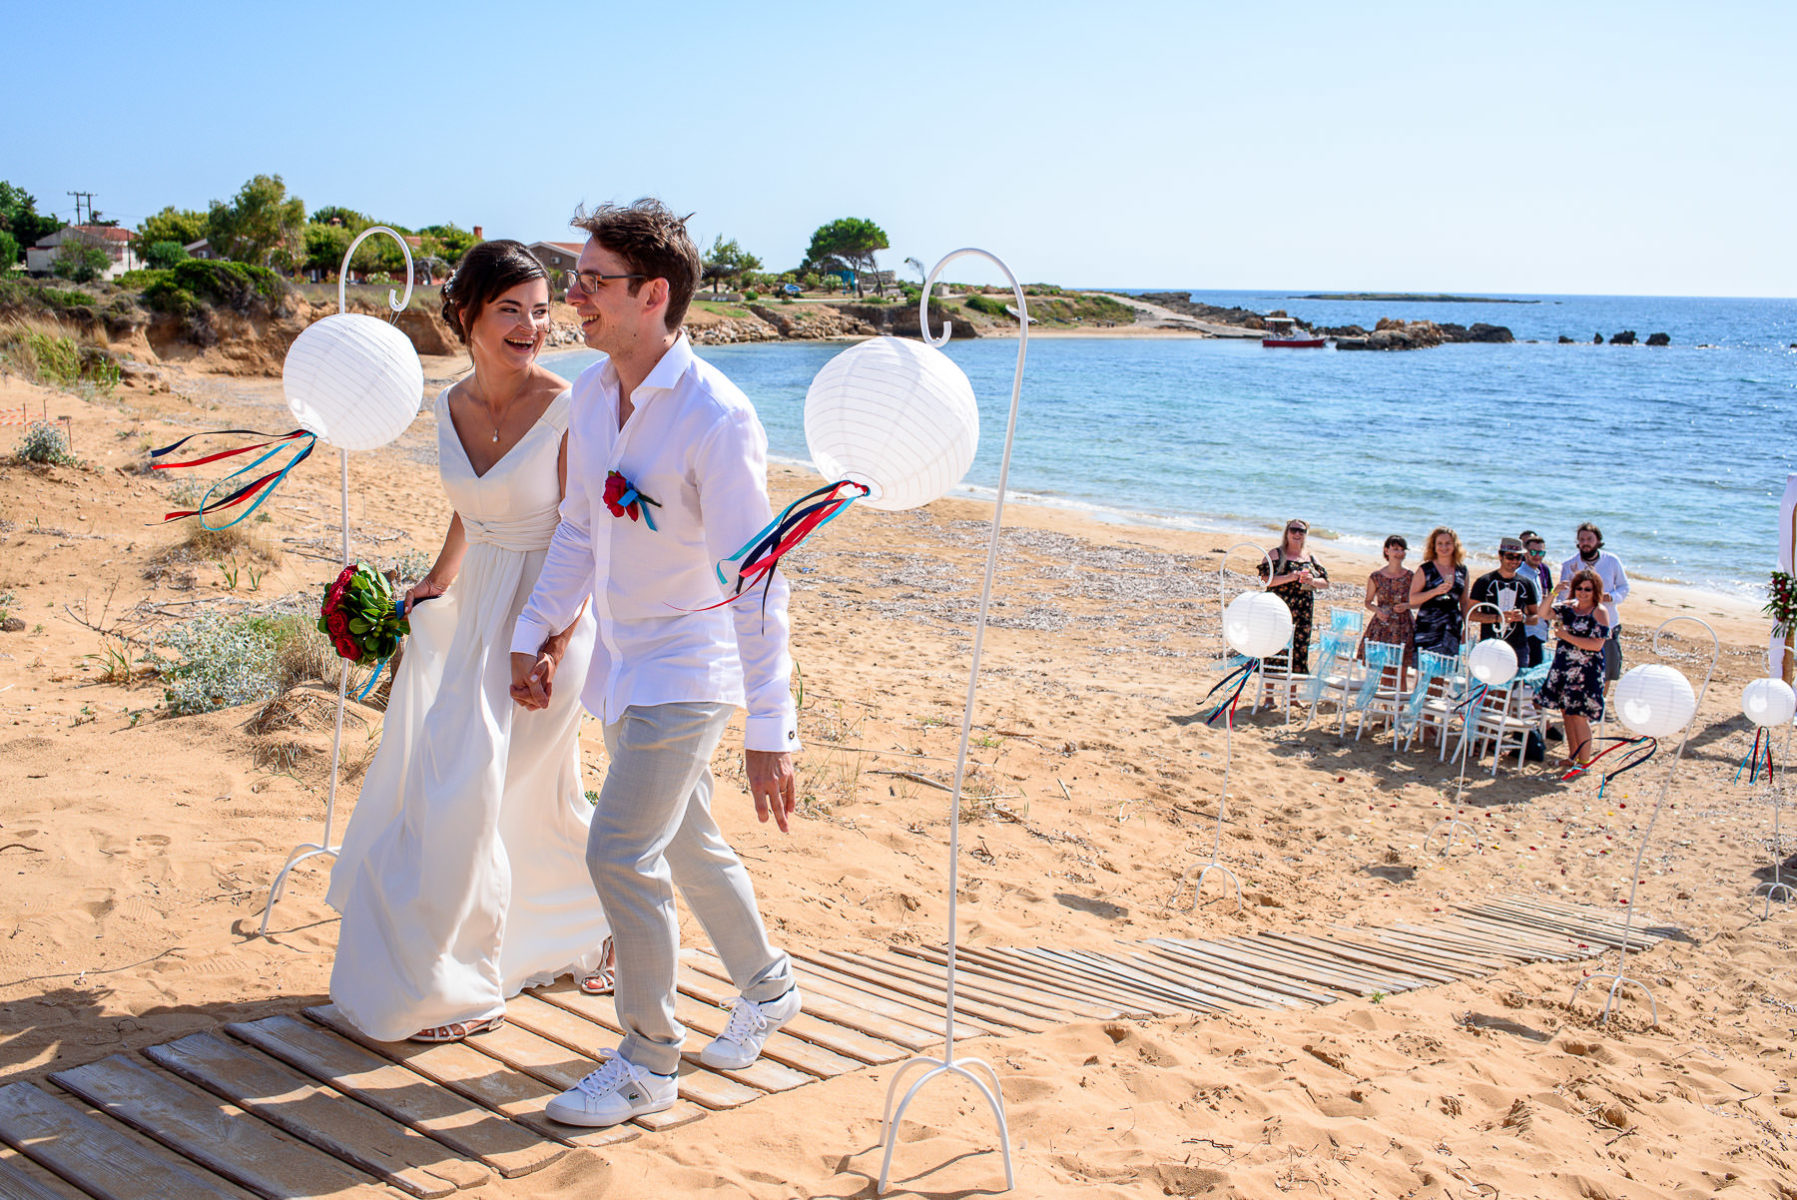 wedding ceremony on a beach in Greece